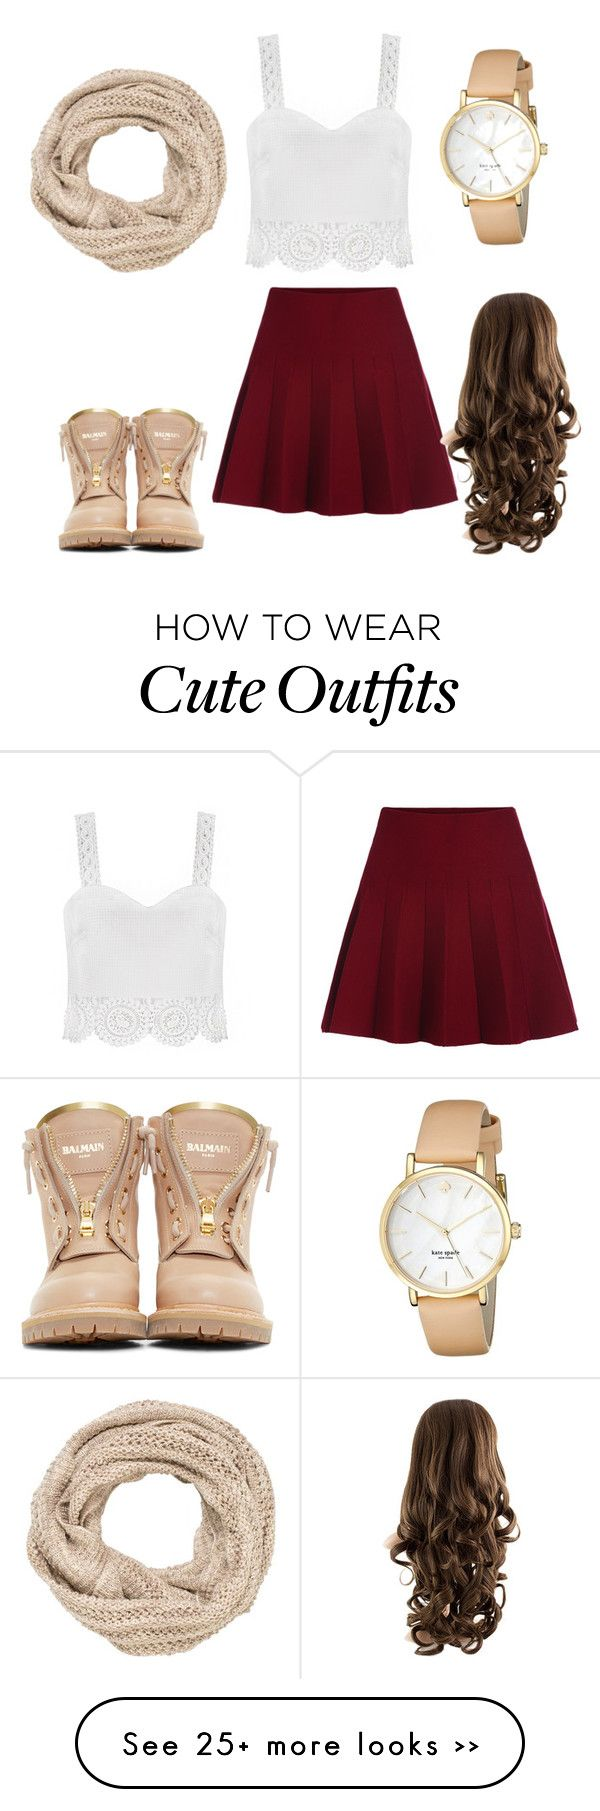 """I wish I could have this outfit anyways just a cute dress up look"" by abbygayle-barber on Polyvore featuring Balmain, maurices and Kate Spade"